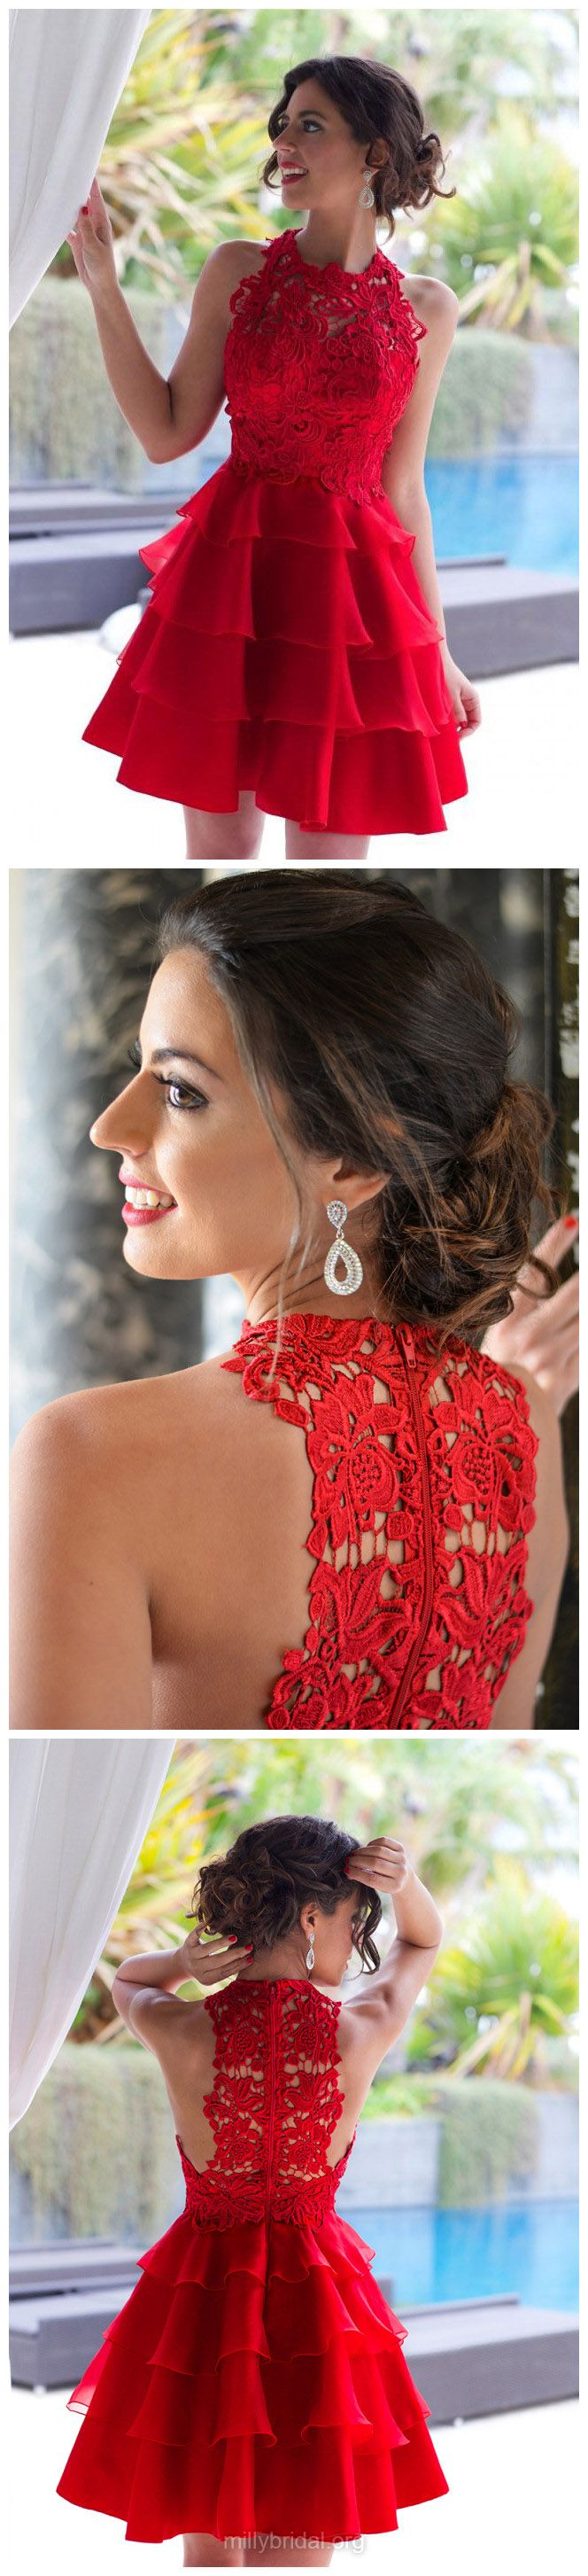 Short Prom Dresses, Red Prom Dresses, Lace Prom Dresses A-line, Scoop Neck Prom Dresses Chiffon, 2018 Prom Dresses Tiered New Style